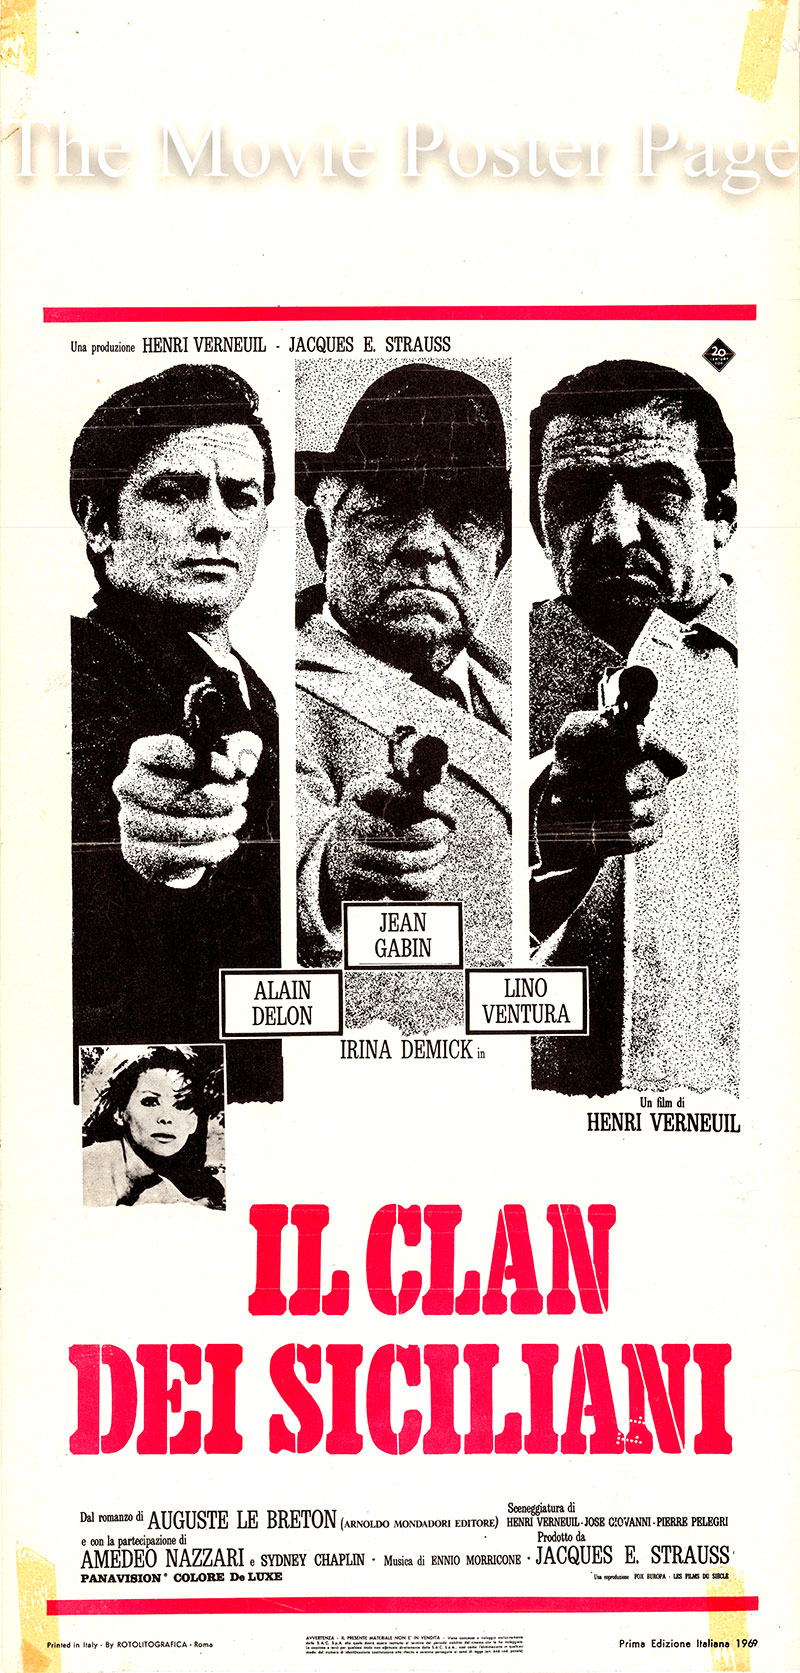 Pictured is an Italian locandina poster for the 1969 film The Sicilian Clan starring Alain Delon as Roger Sartet.